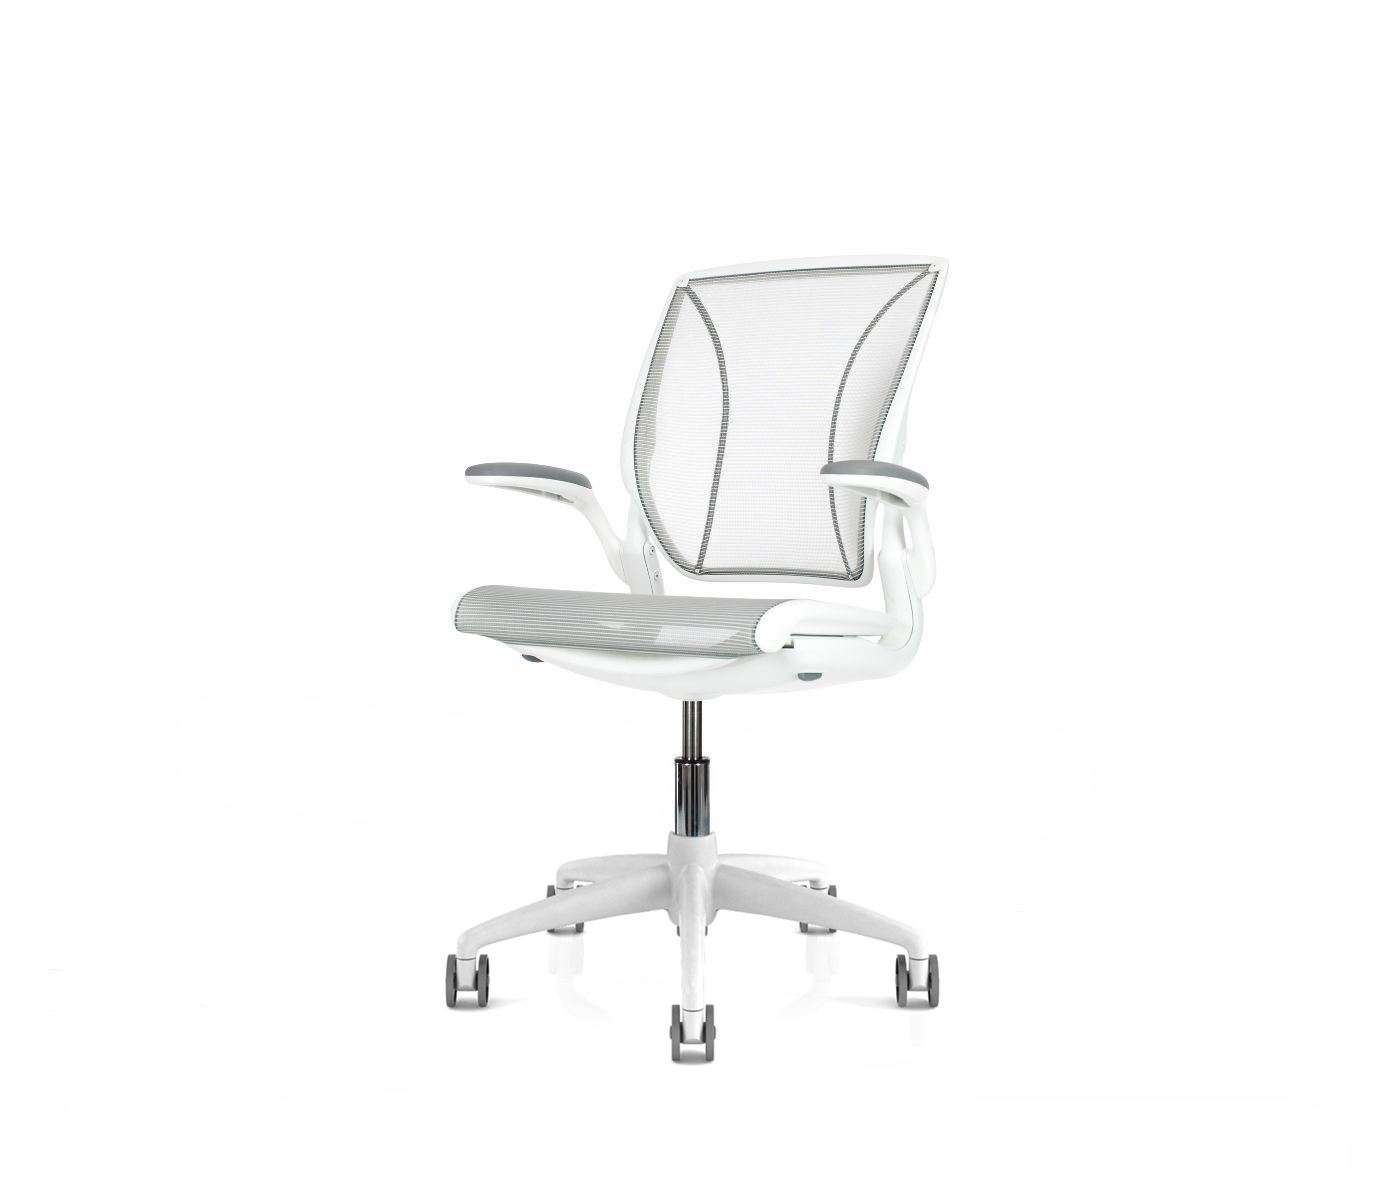 Office Seating Chairs diffrient world chair | ergonomic seating from humanscale